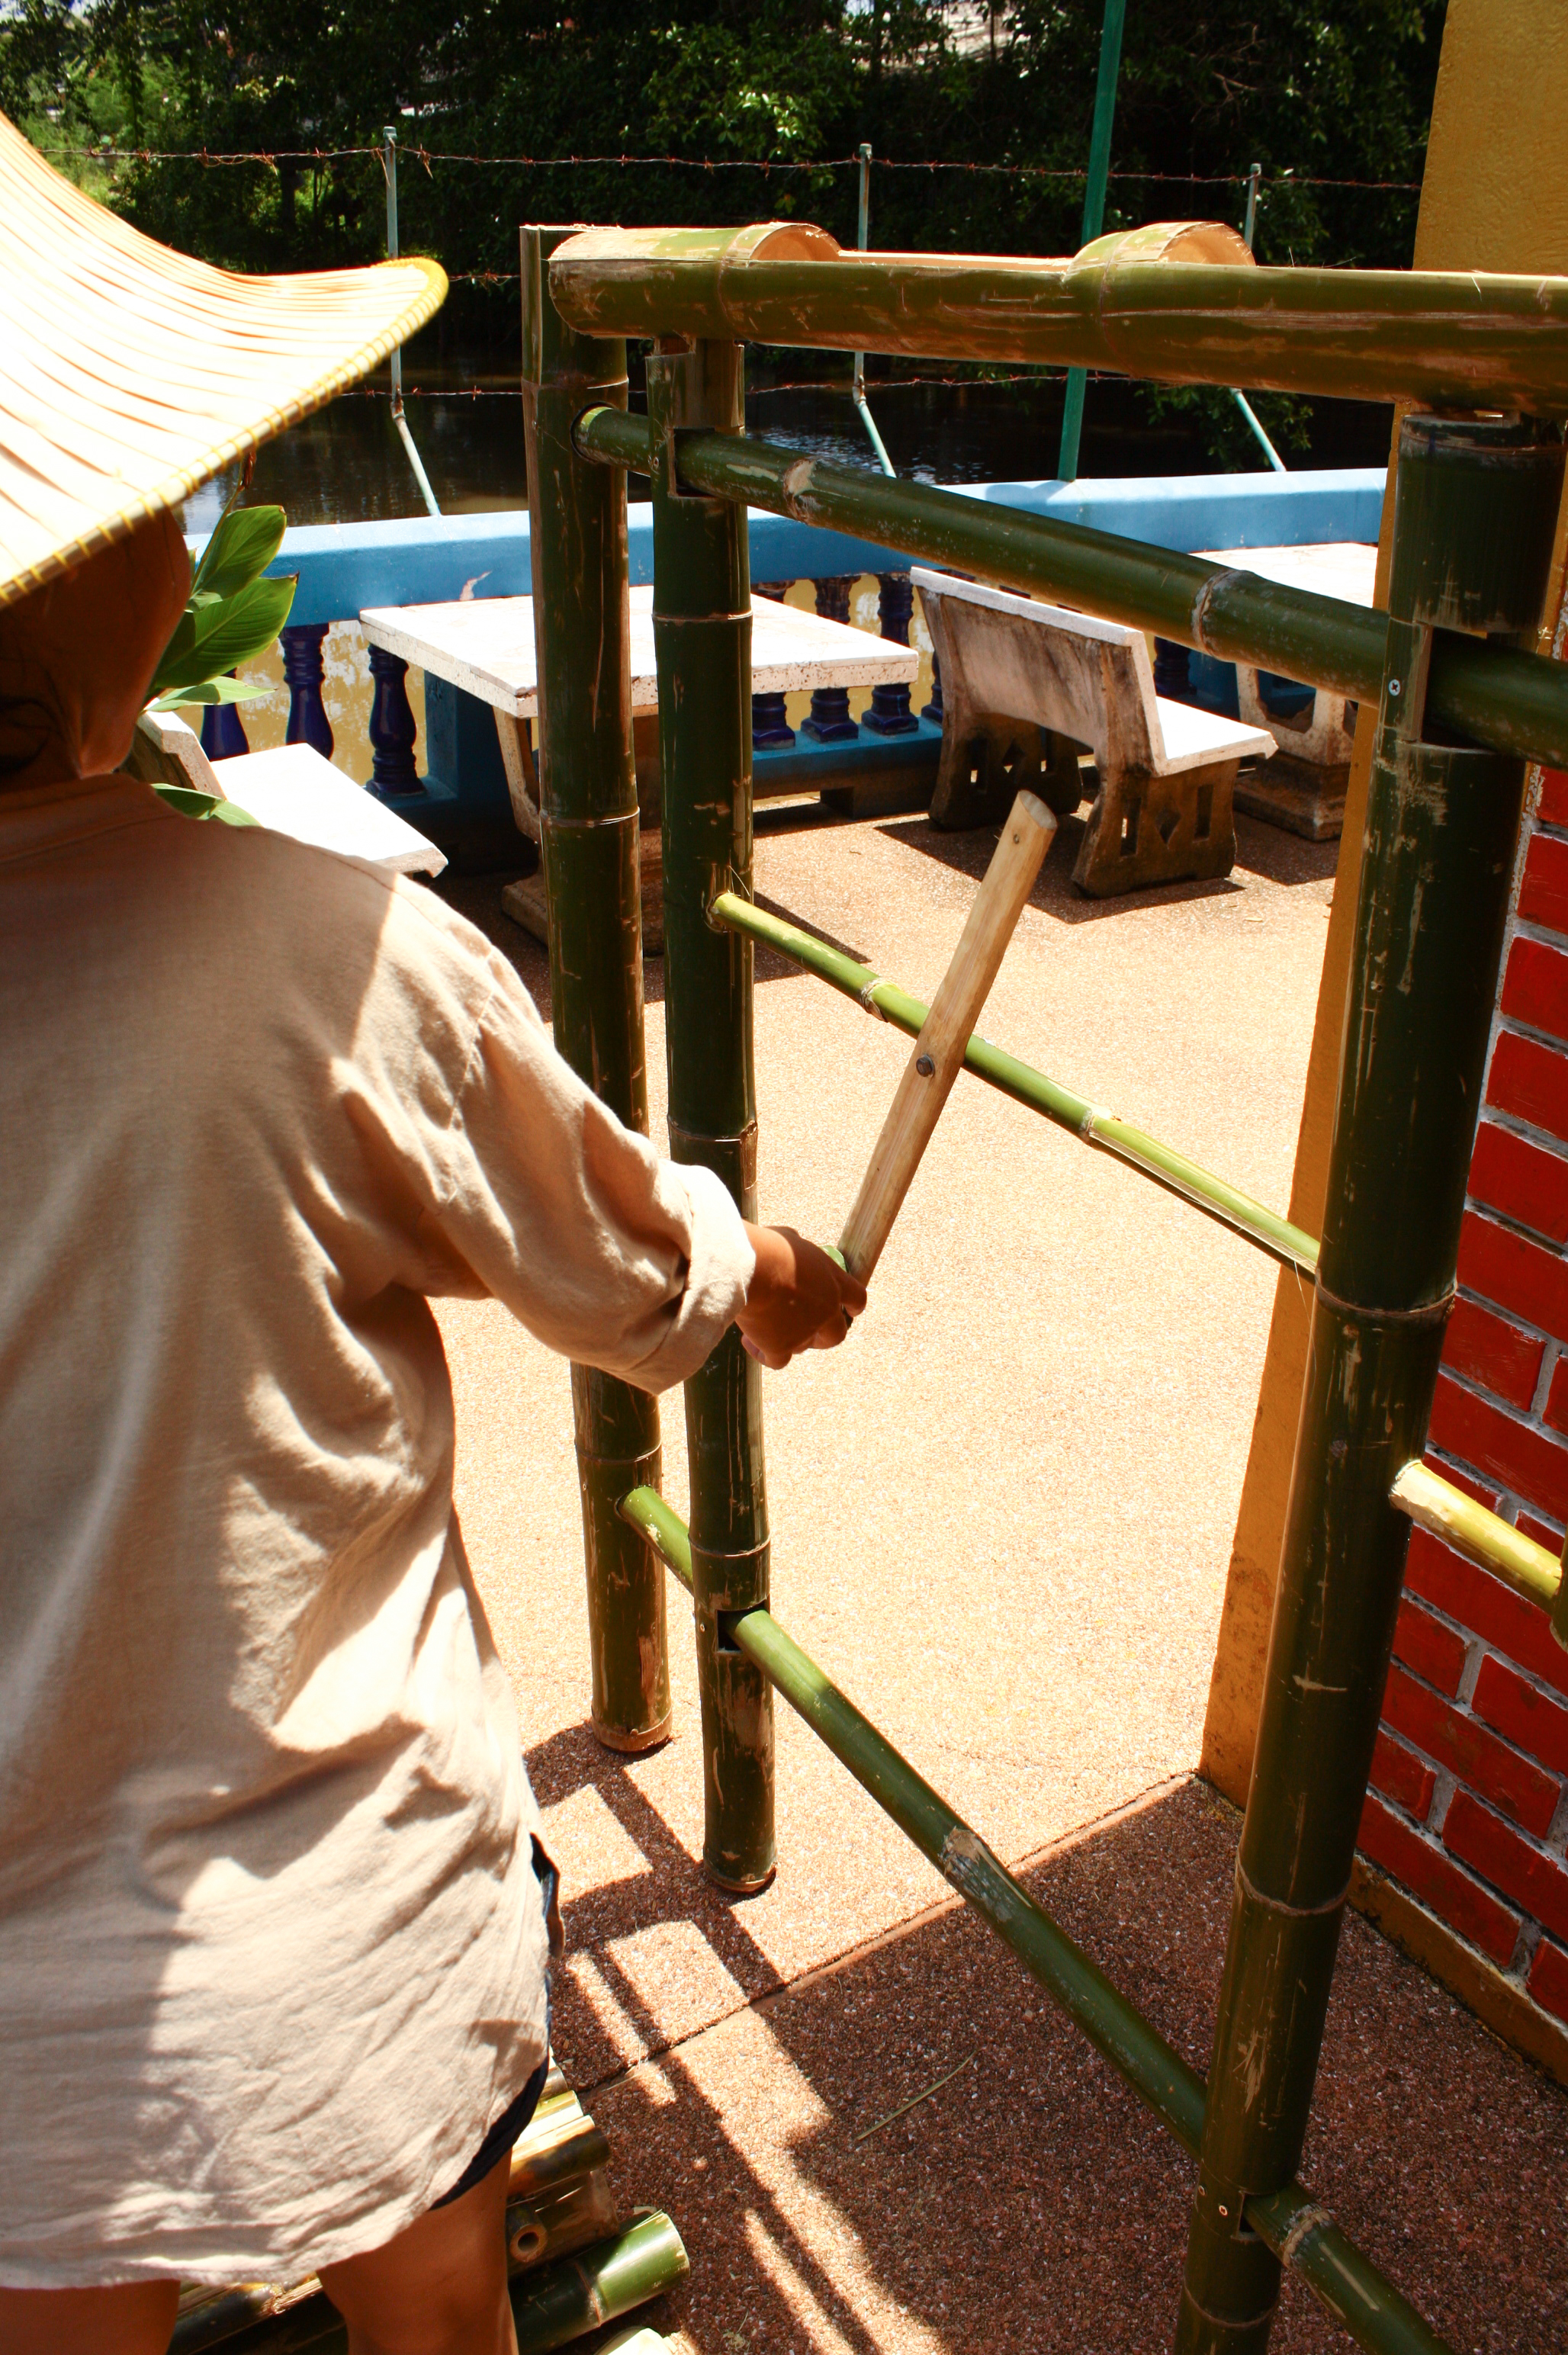 Community furniture Klong 3, Thailand: exercise piece made of bamboo for elderly people